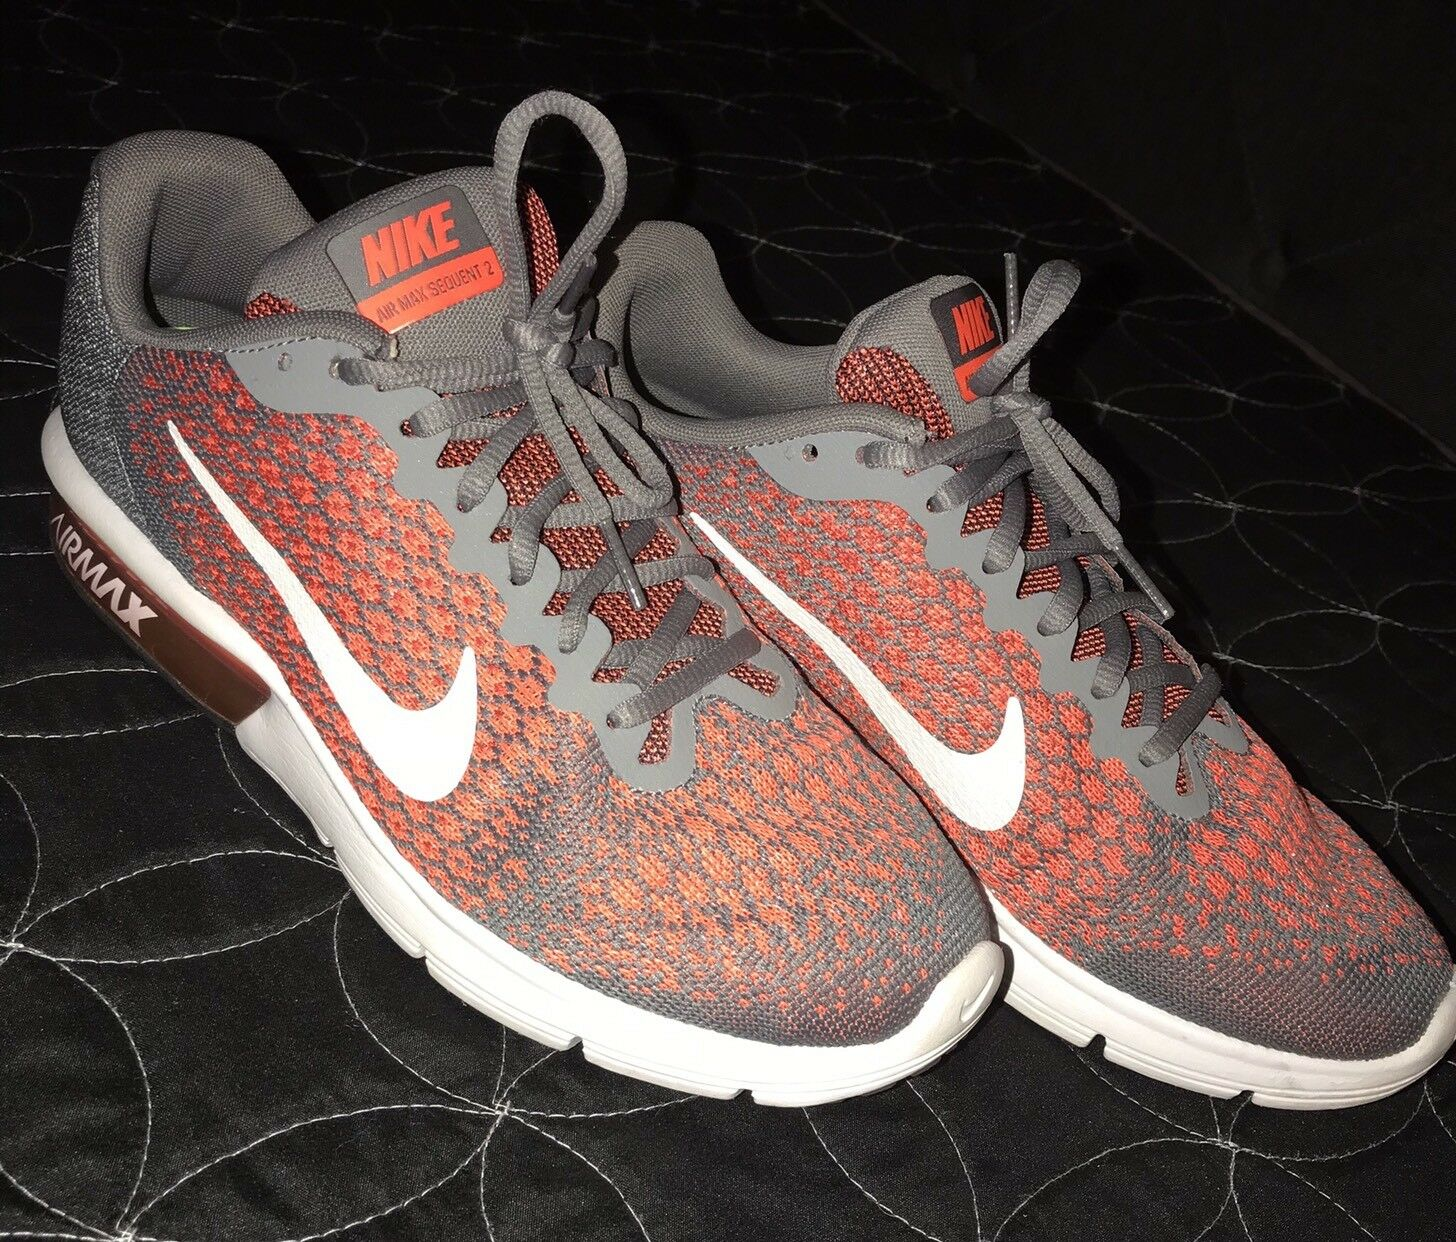 Mens Nike Air Max Sequent 2 Size 8 852461-008 Cool Grey orange